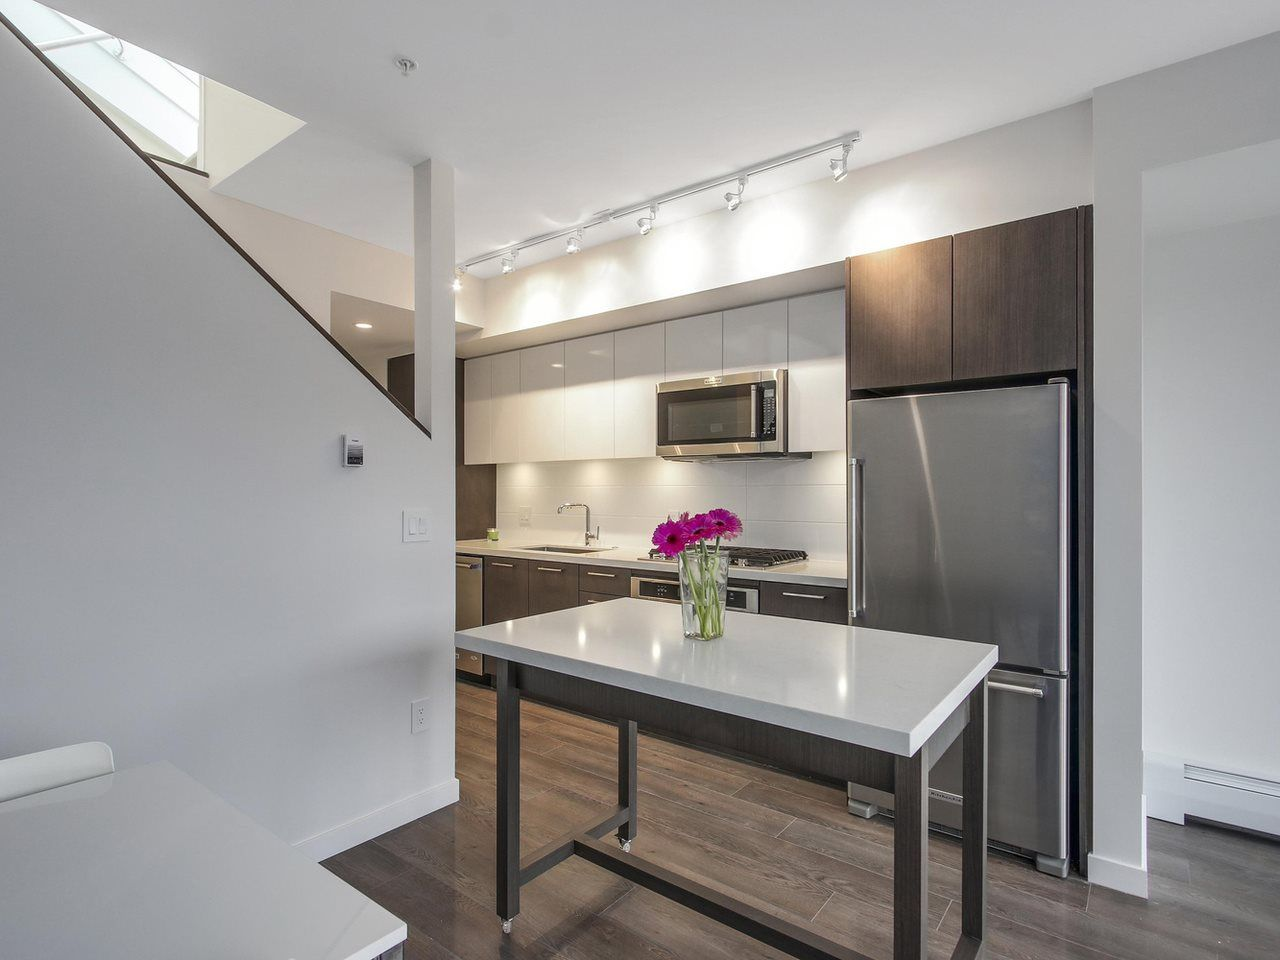 """Photo 5: Photos: 604 417 GREAT NORTHERN Way in Vancouver: Mount Pleasant VE Condo for sale in """"CANVAS"""" (Vancouver East)  : MLS®# R2118078"""